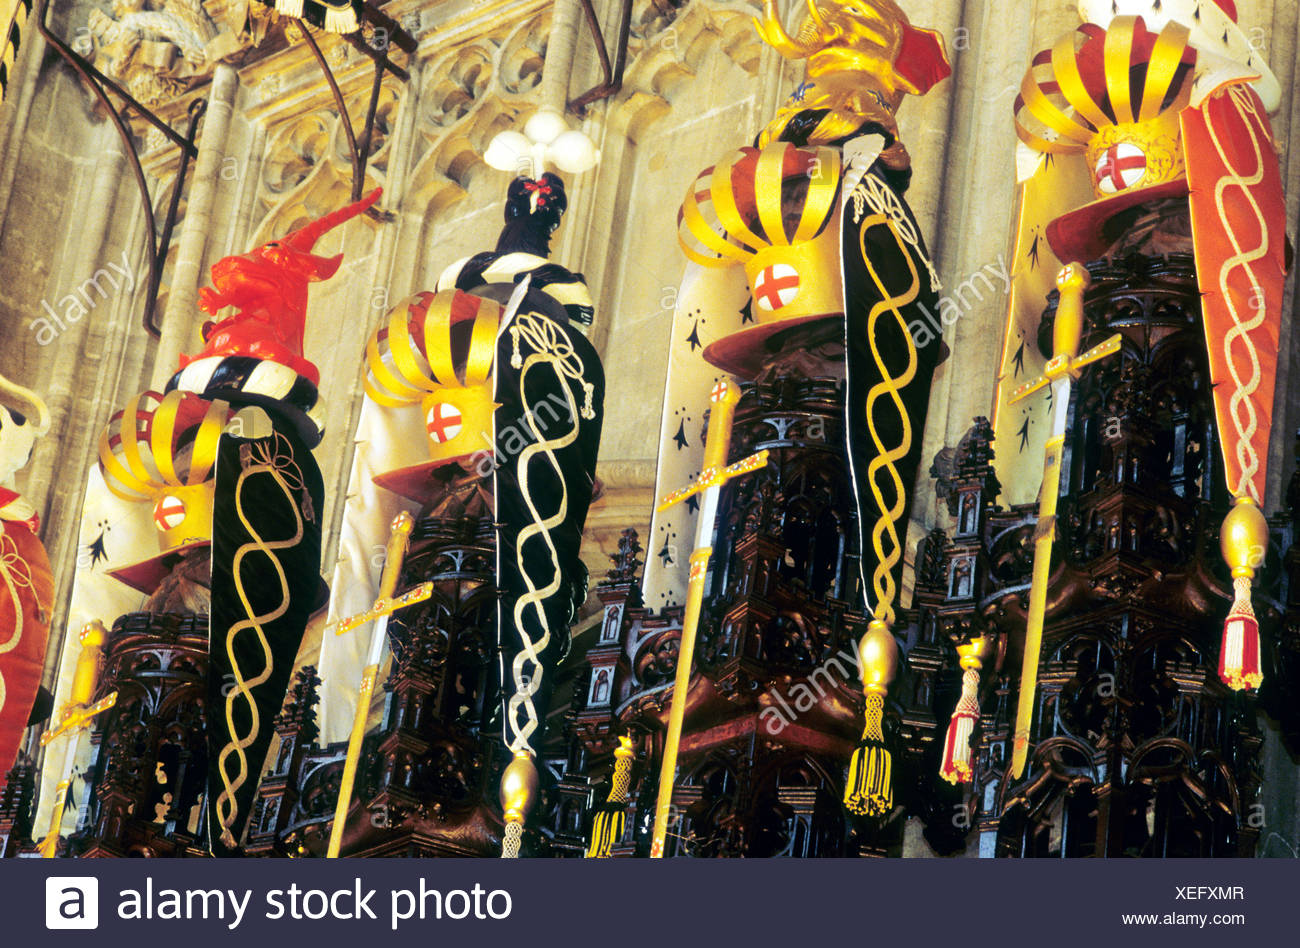 Windsor St George's Chapel interior Berkshire Knights of the Order of the Garter, coat of arms heraldry England UK heraldic interiors - Stock Image